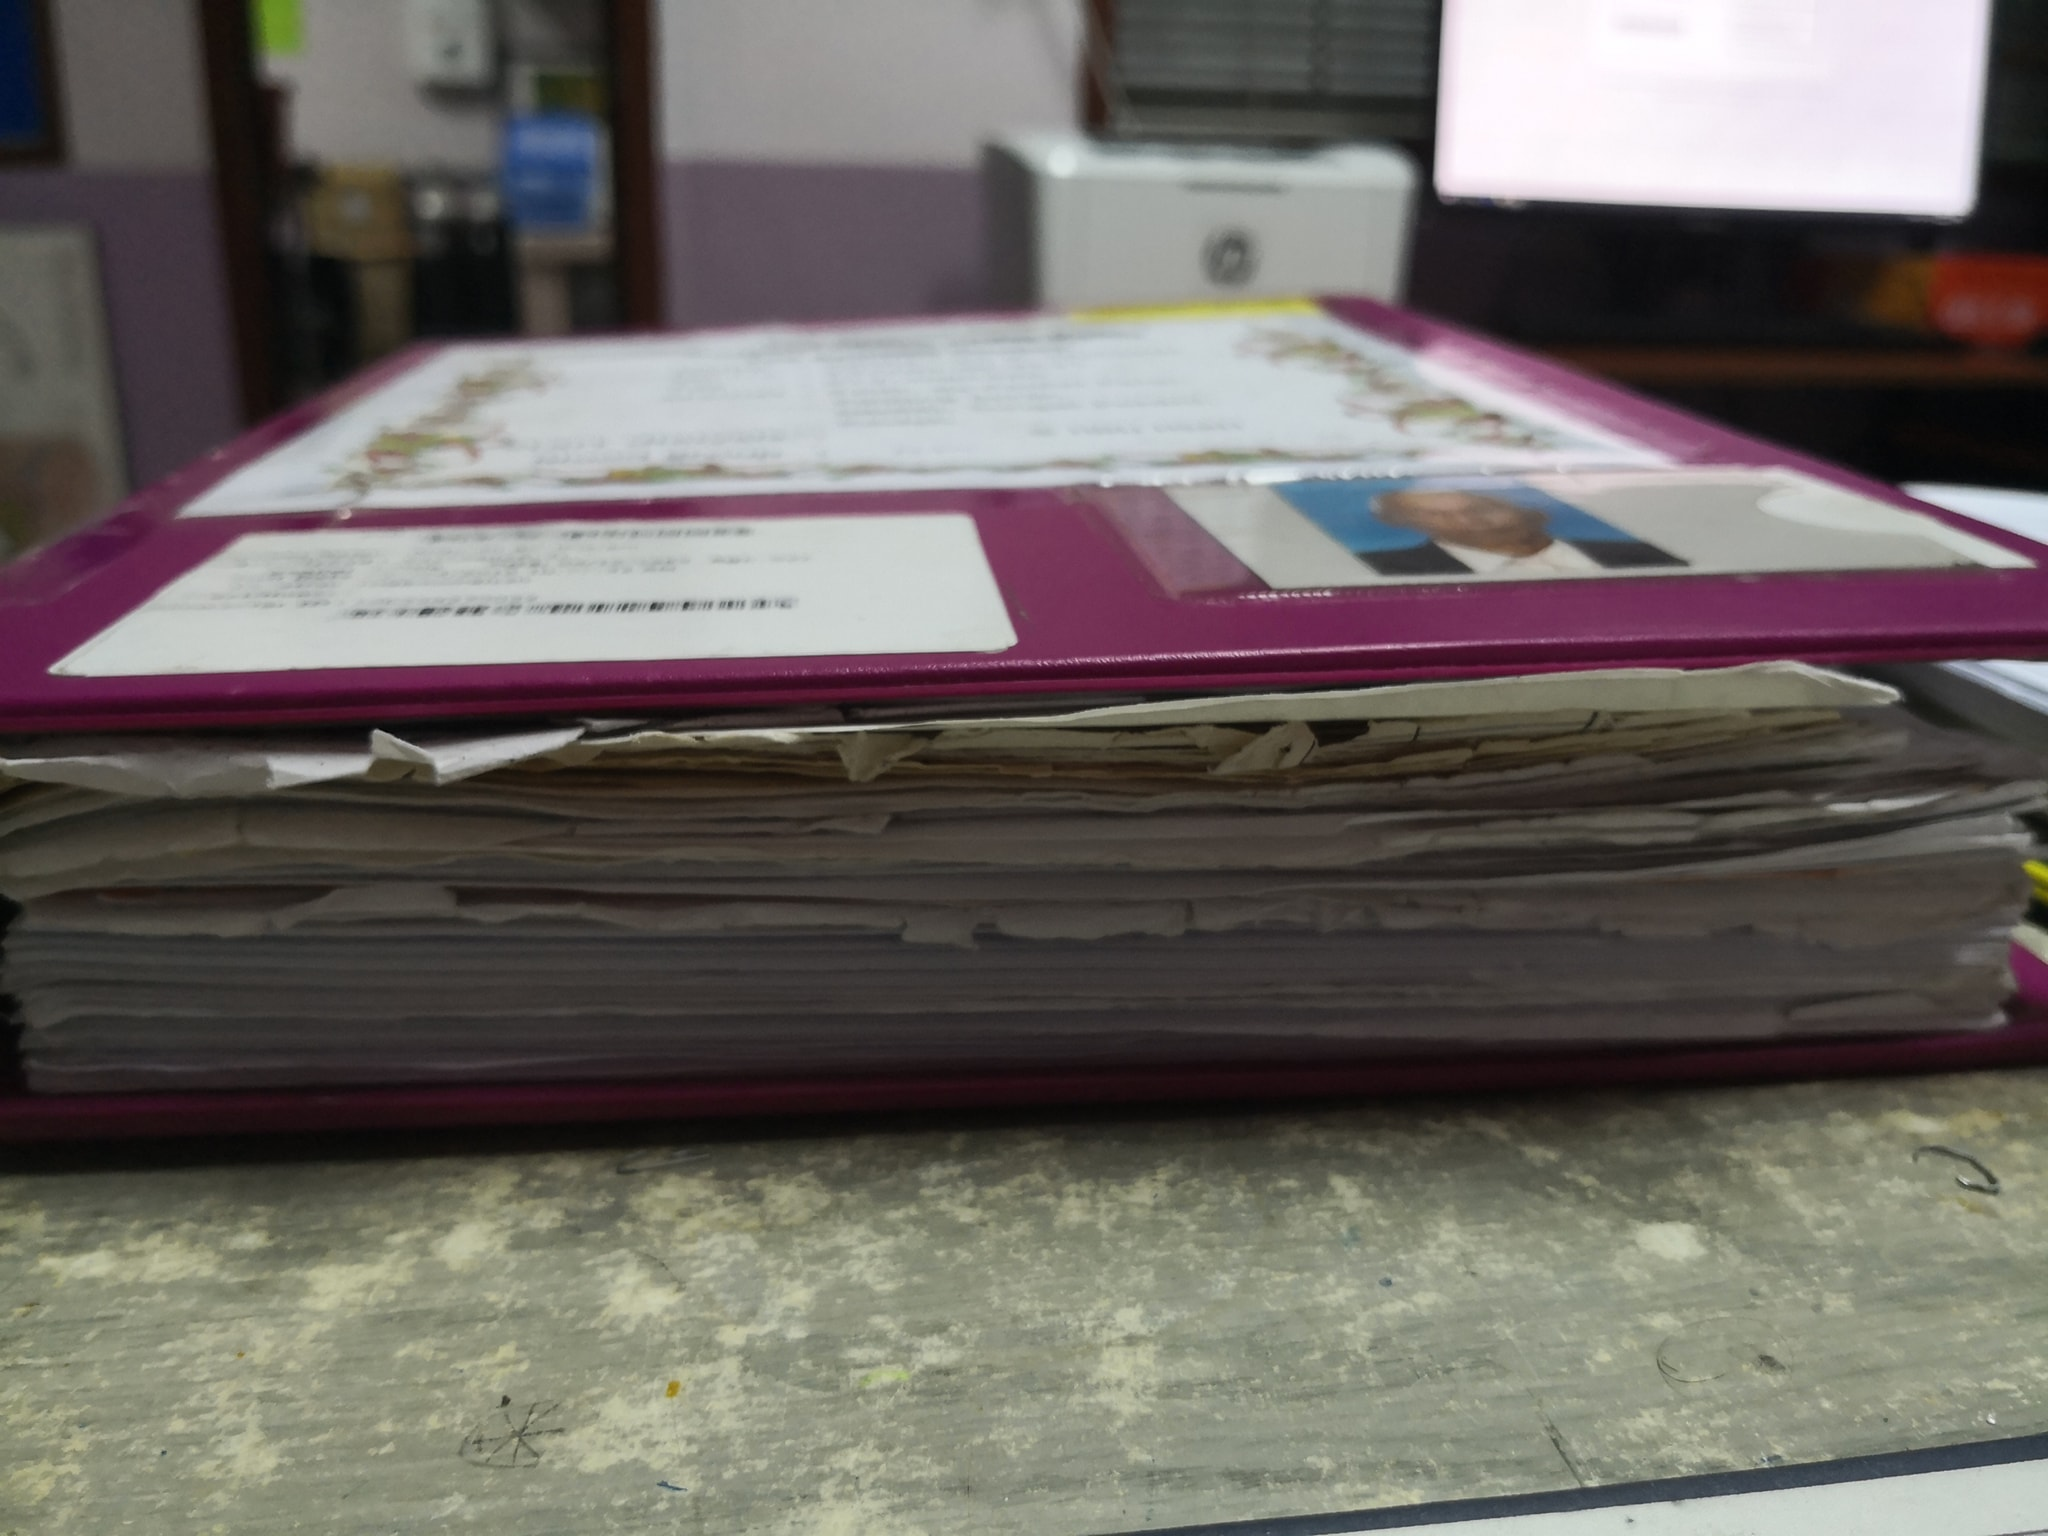 30 years worth of medical notes.